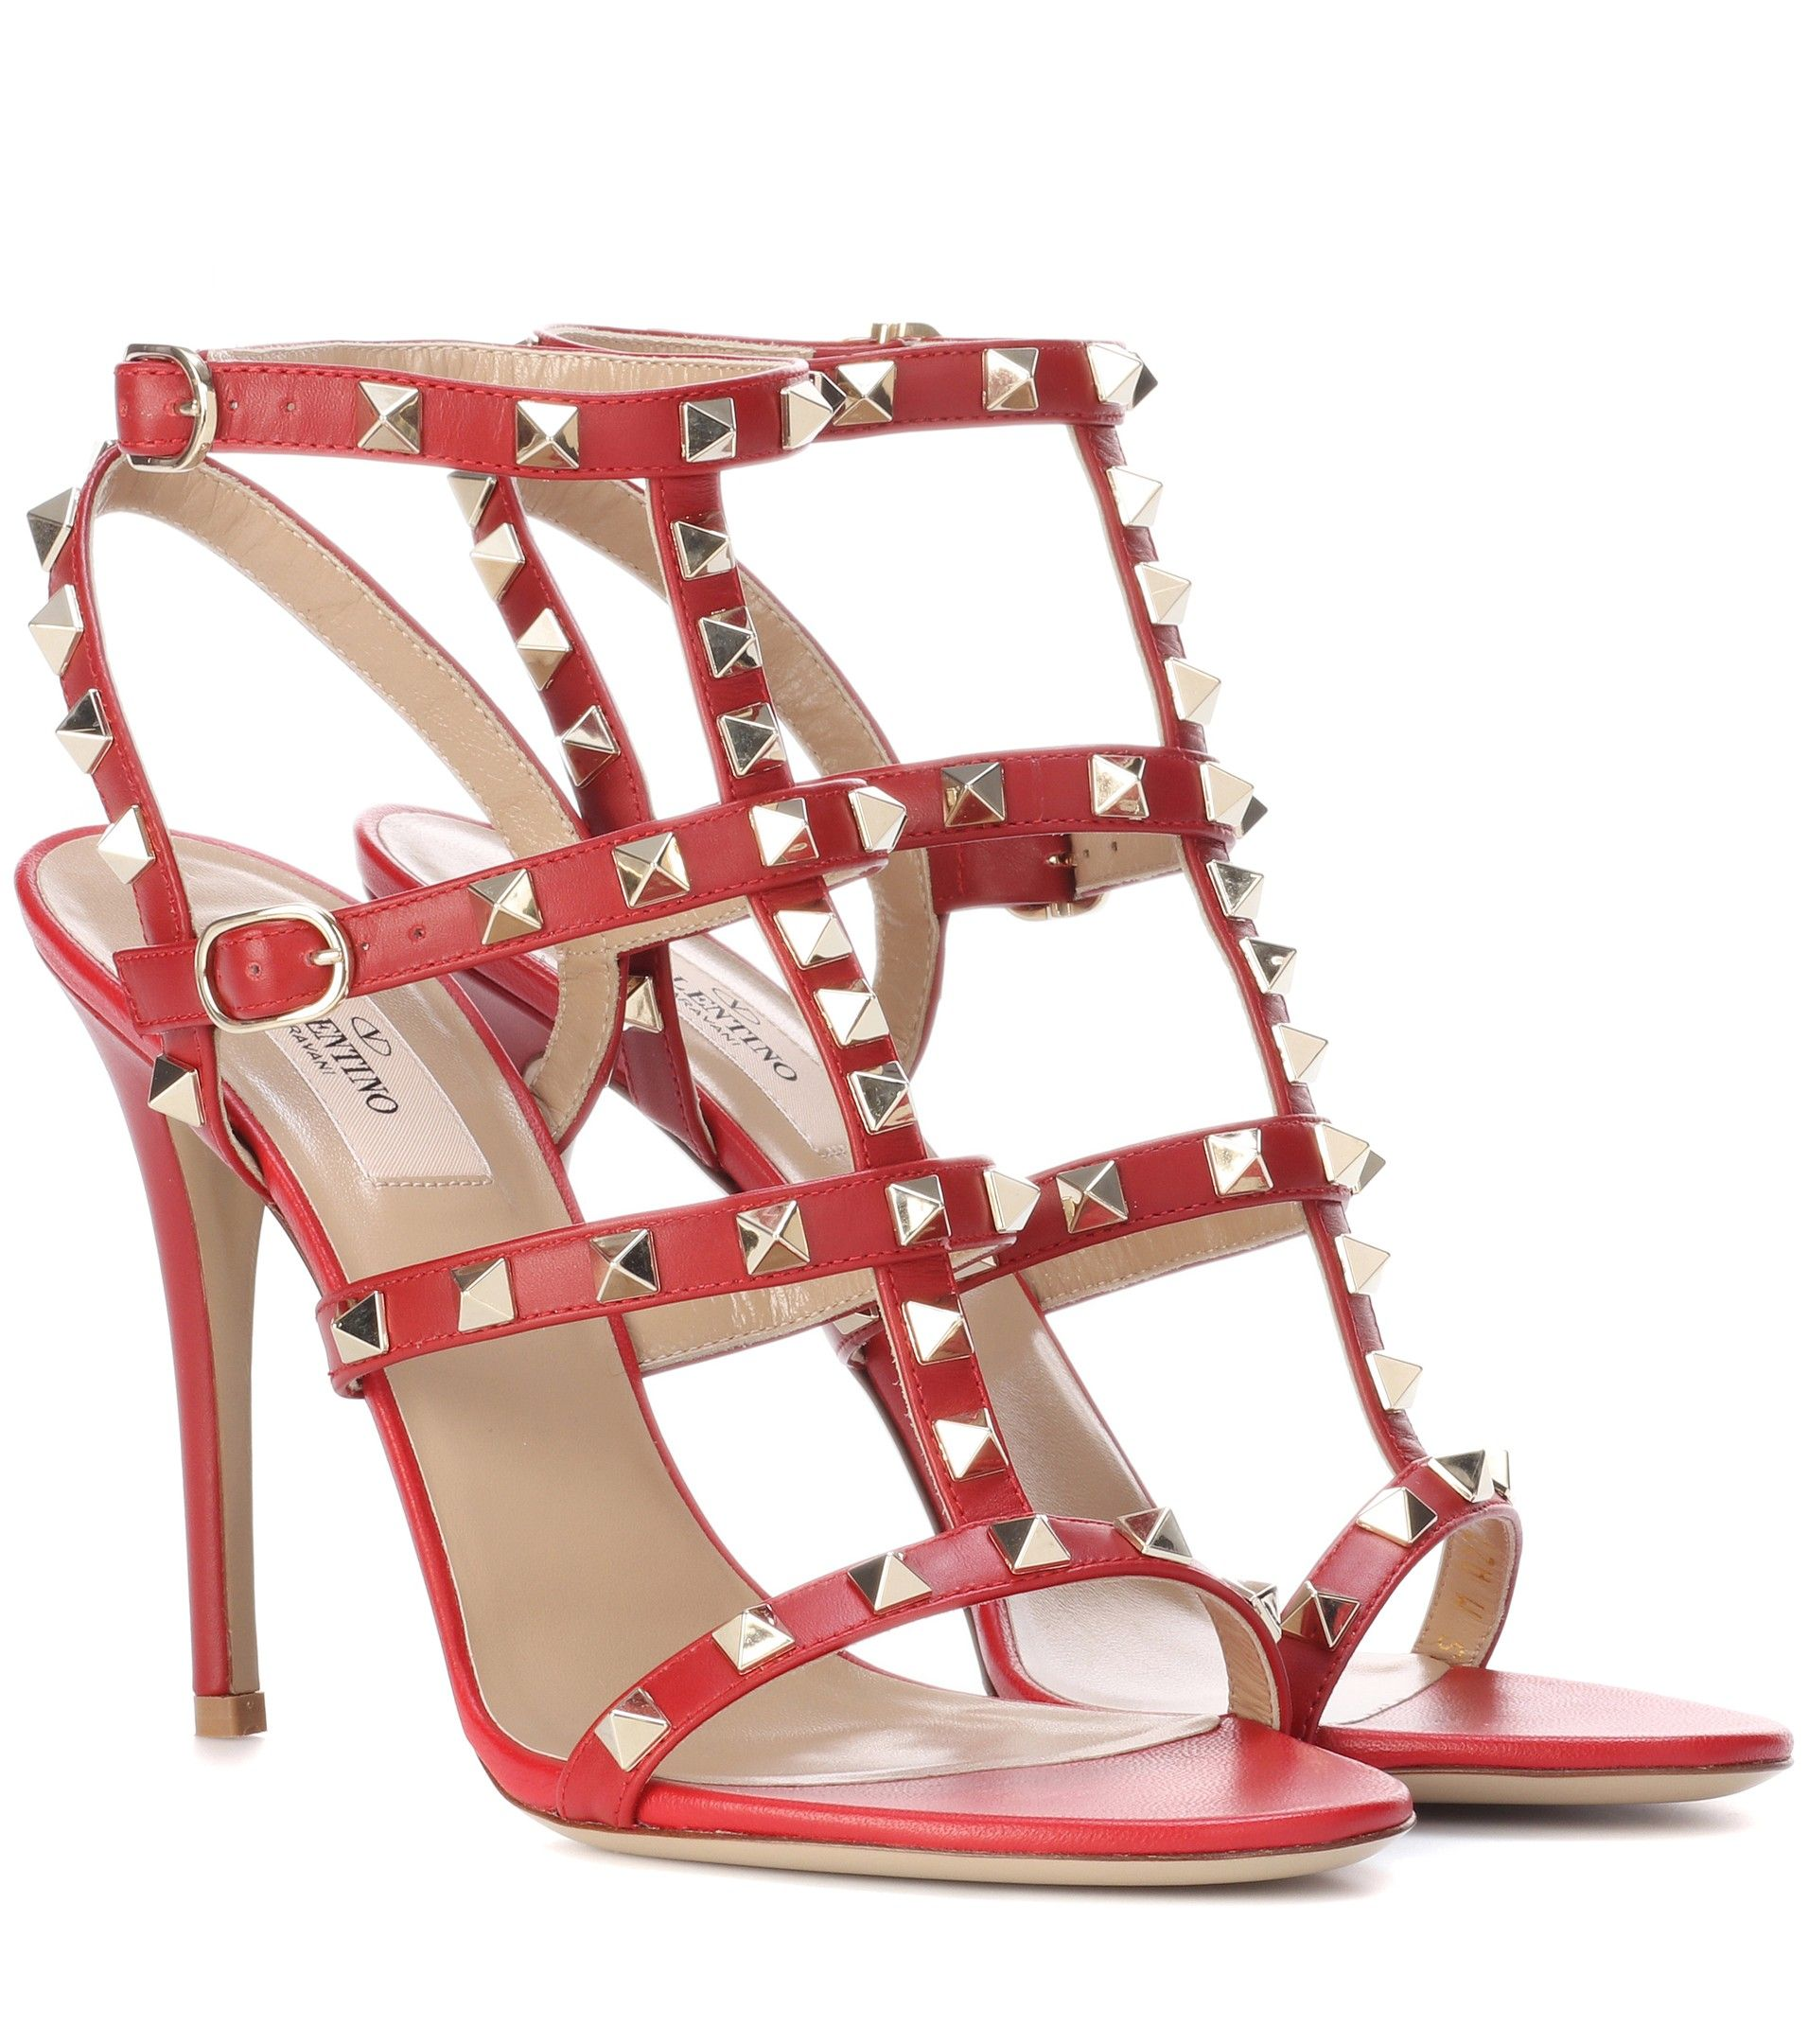 Valentino Garavani Rockstud sandals - Red Valentino Buy Cheap New Arrival Best Prices Cheap Online Good Selling Cheap Online Outlet Enjoy EBXQqm